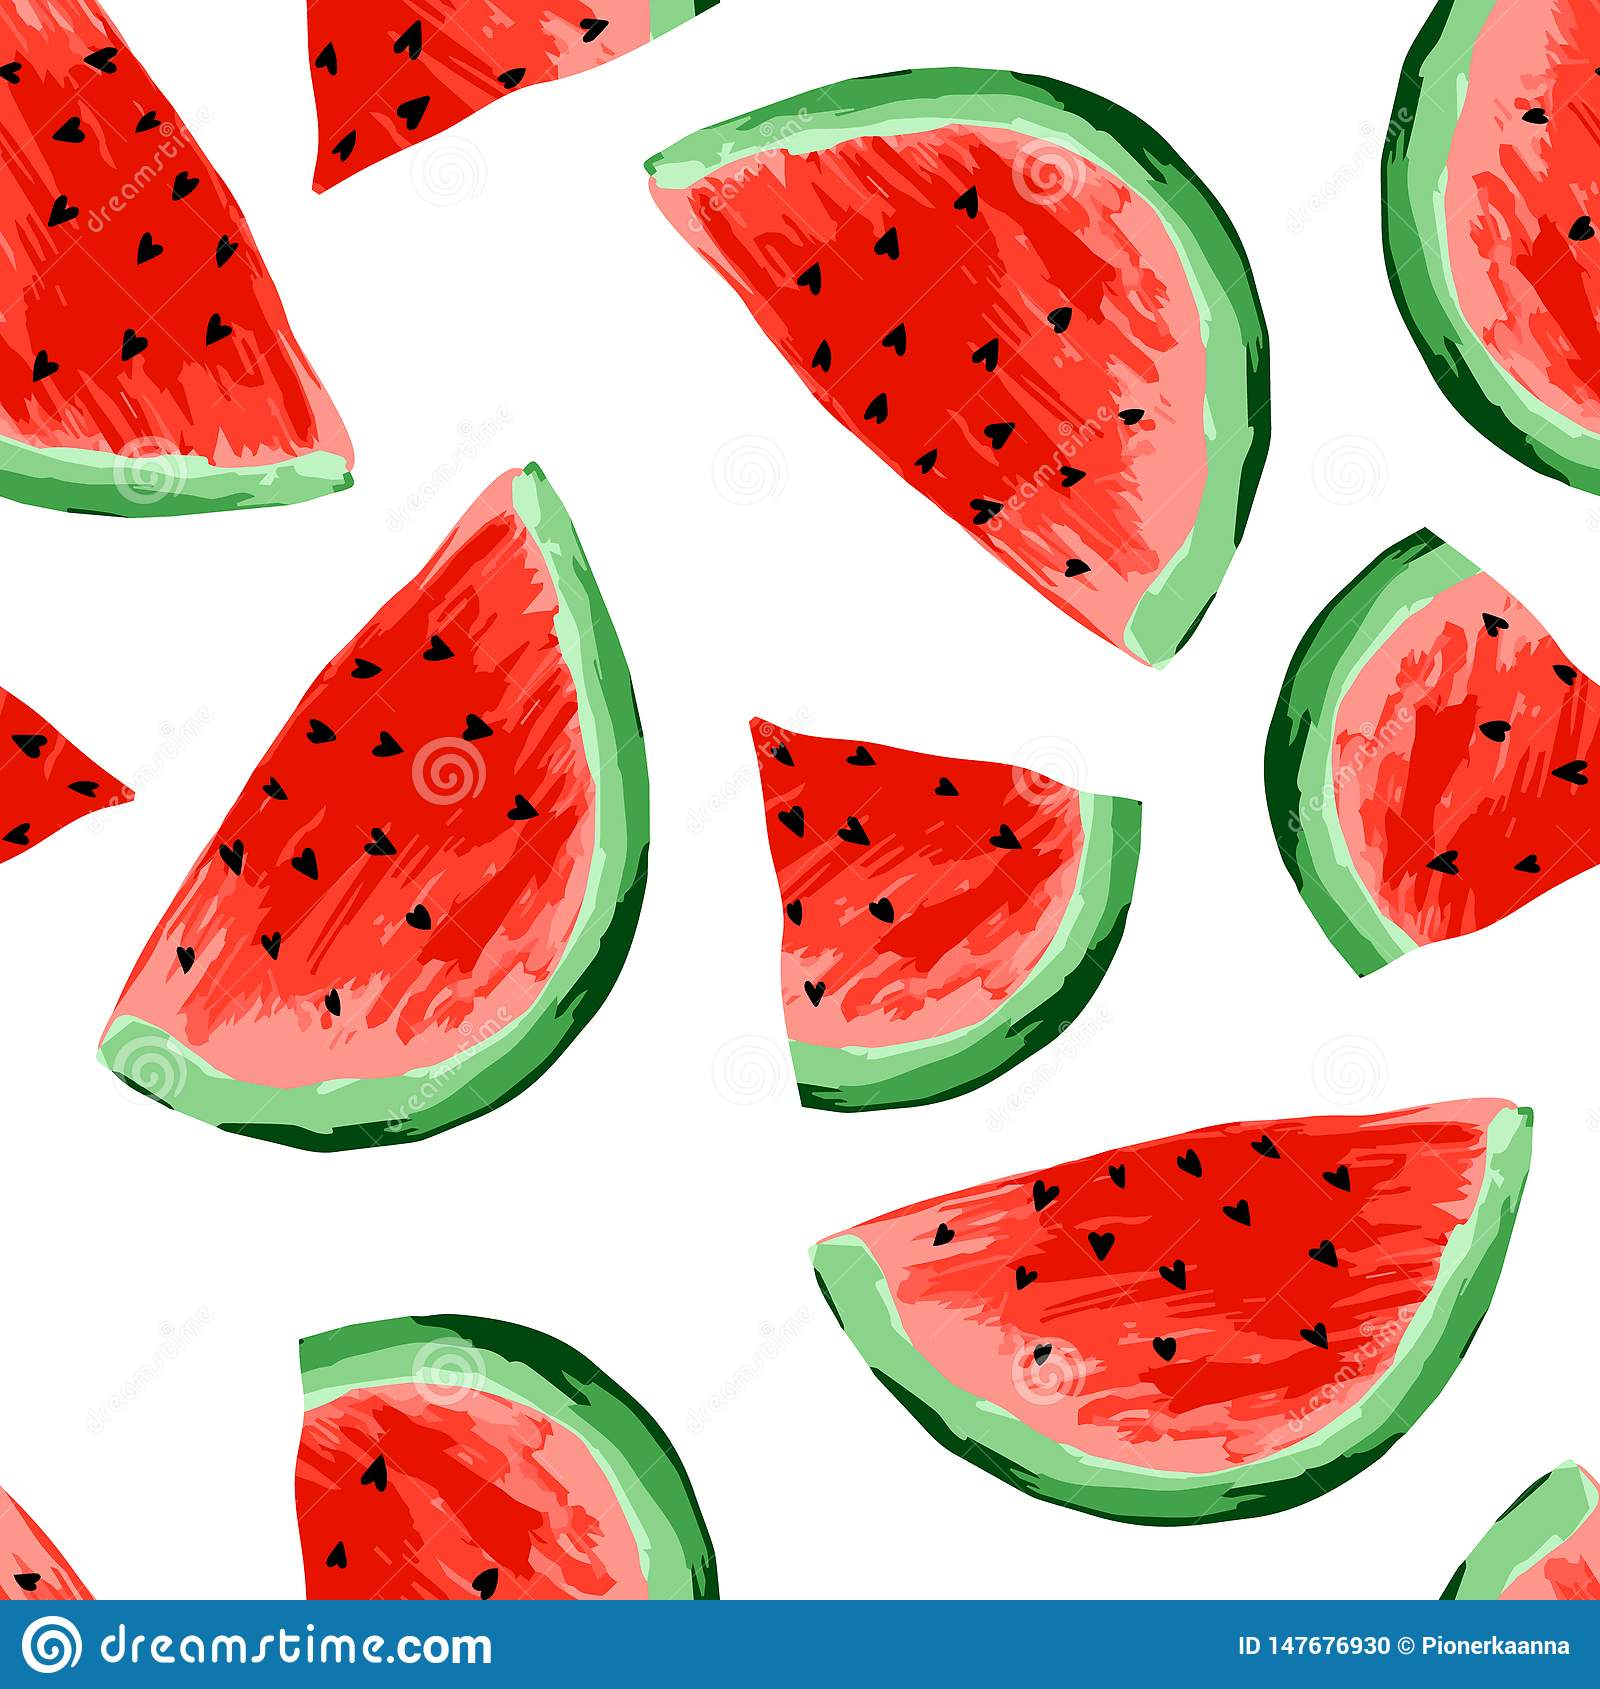 Seamless watermelons pattern. Slices of watermelon, berry background. Painted fruit, graphic art, cartoon.